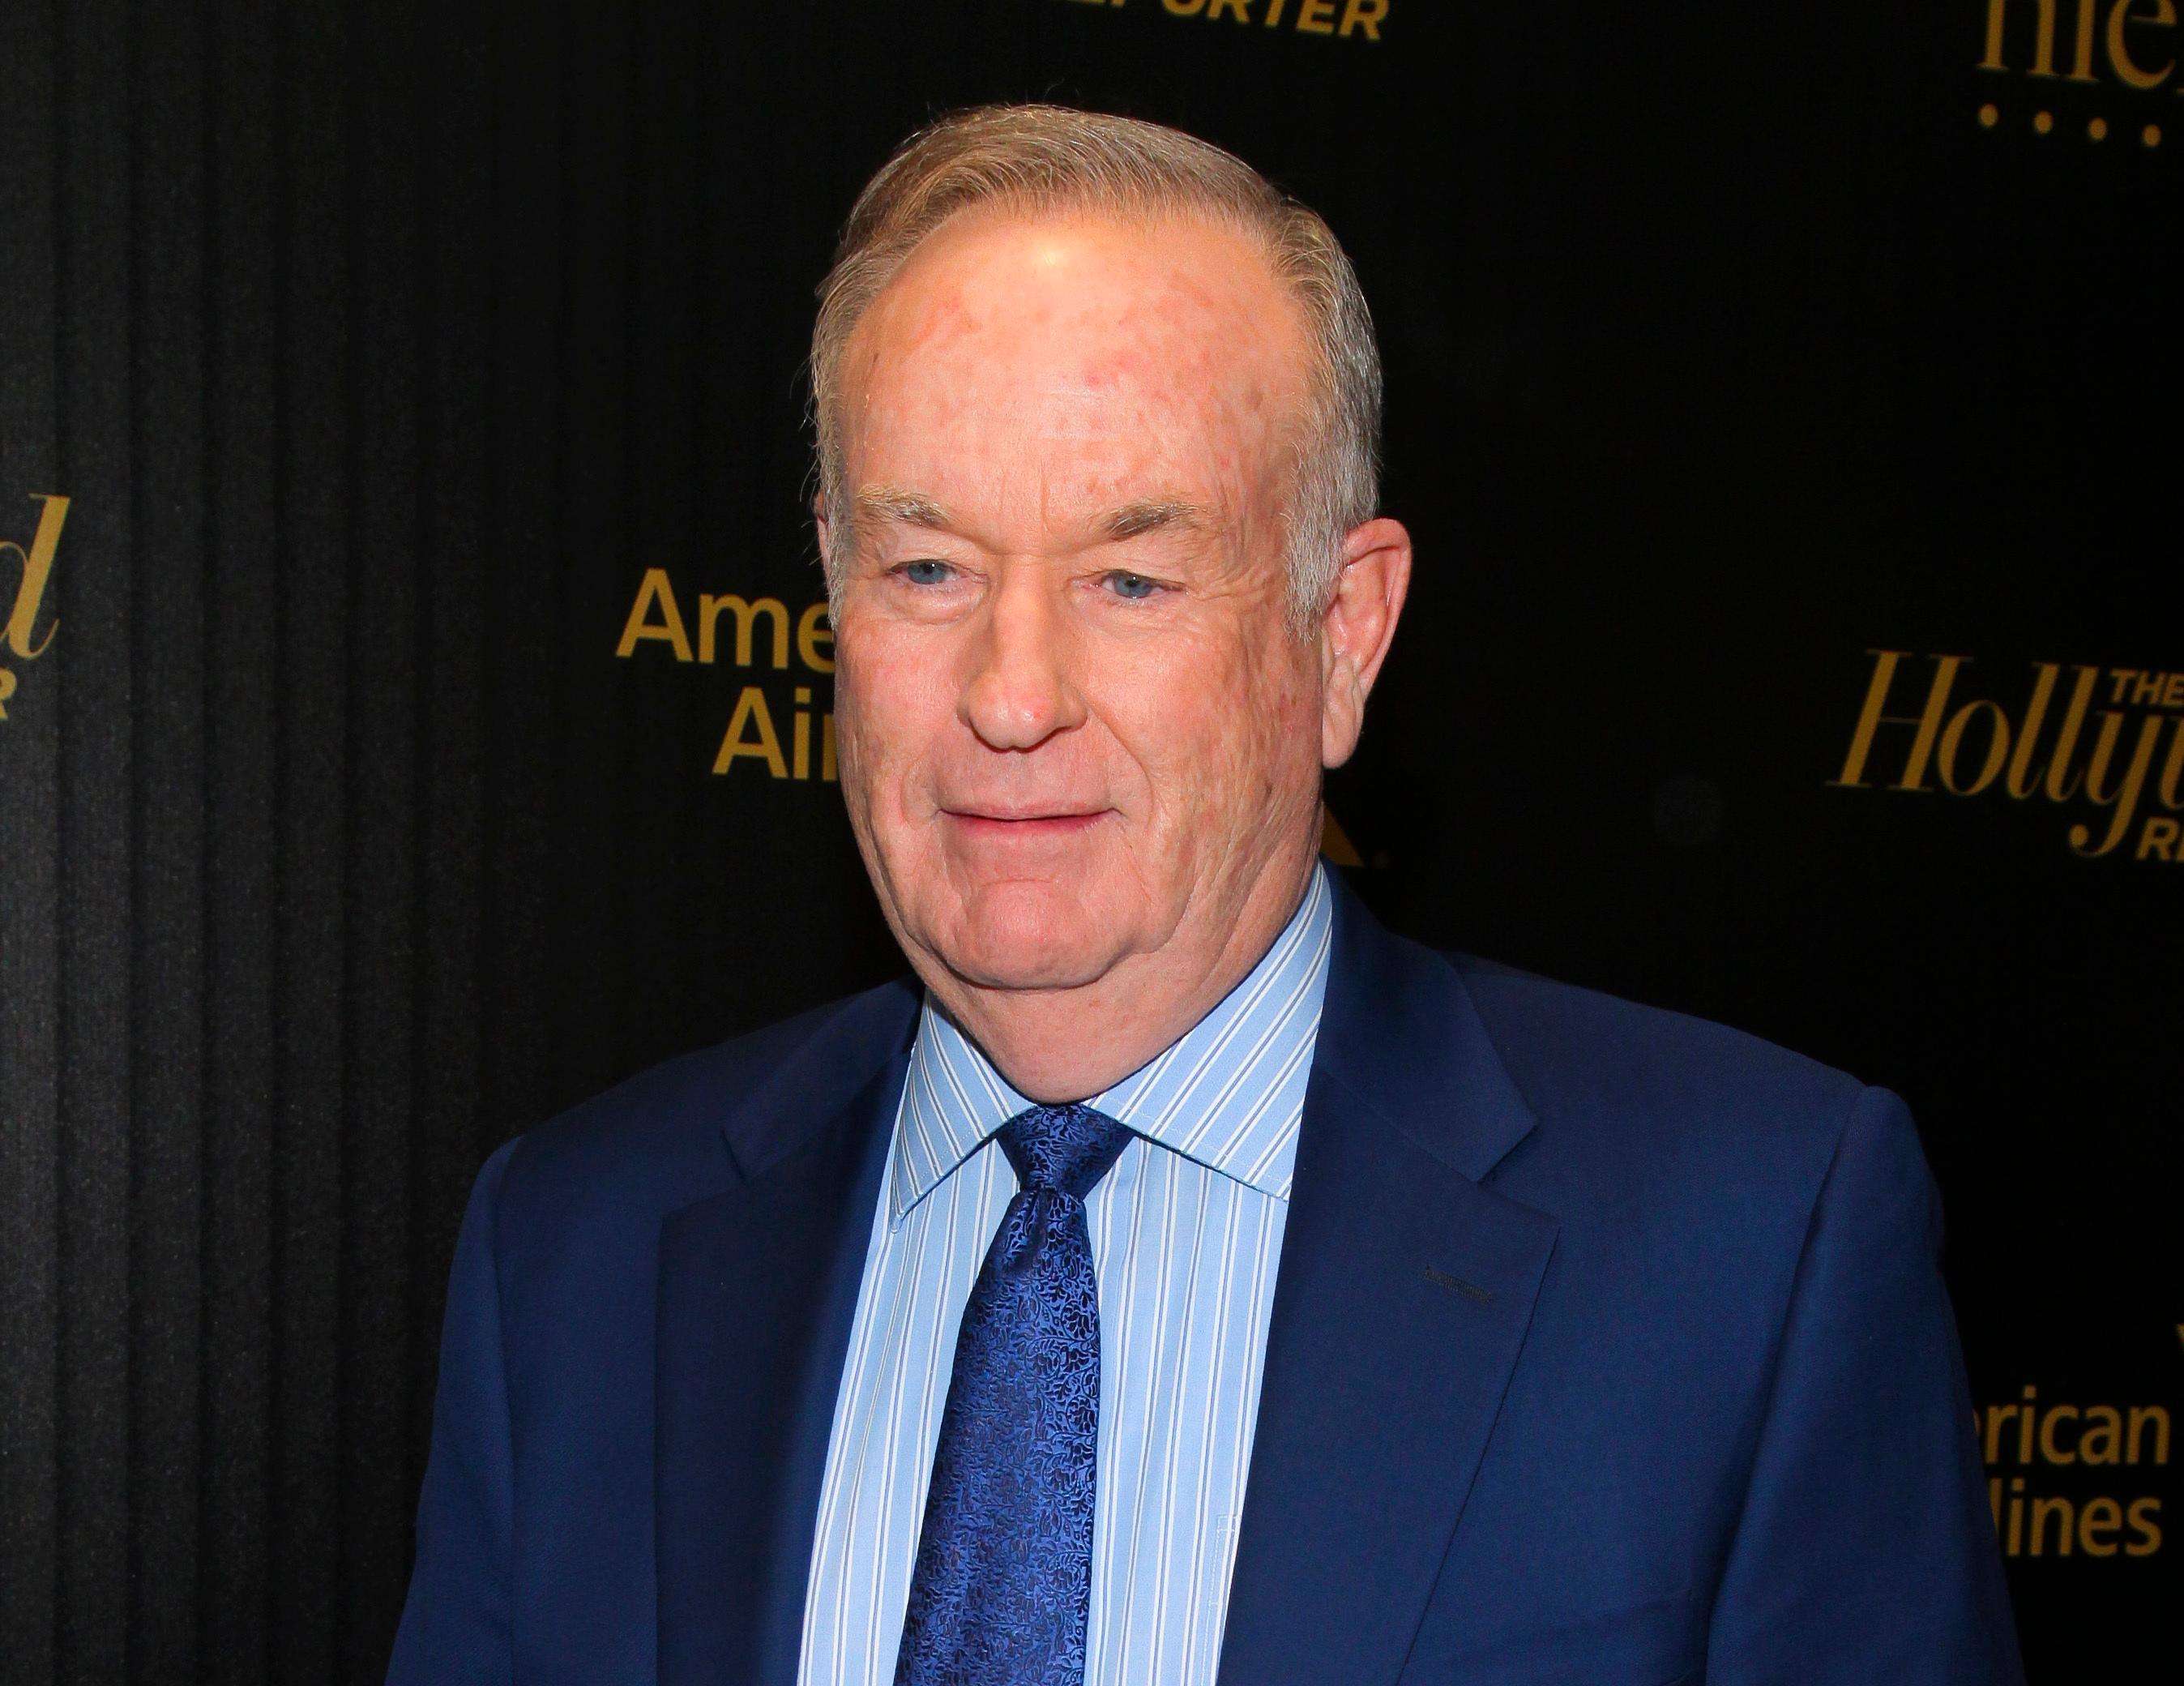 "FILE - In this April 6, 2016, file photo, Bill O'Reilly attends The Hollywood Reporter's ""35 Most Powerful People in Media"" celebration in New York. According to a post on his personal website late Saturday, April 22, 2017, the former Fox News host will drop a new episode of his ""No Spin News"" podcast Monday evening, April 24, 2017. (Photo by Andy Kropa/Invision/AP, File)"